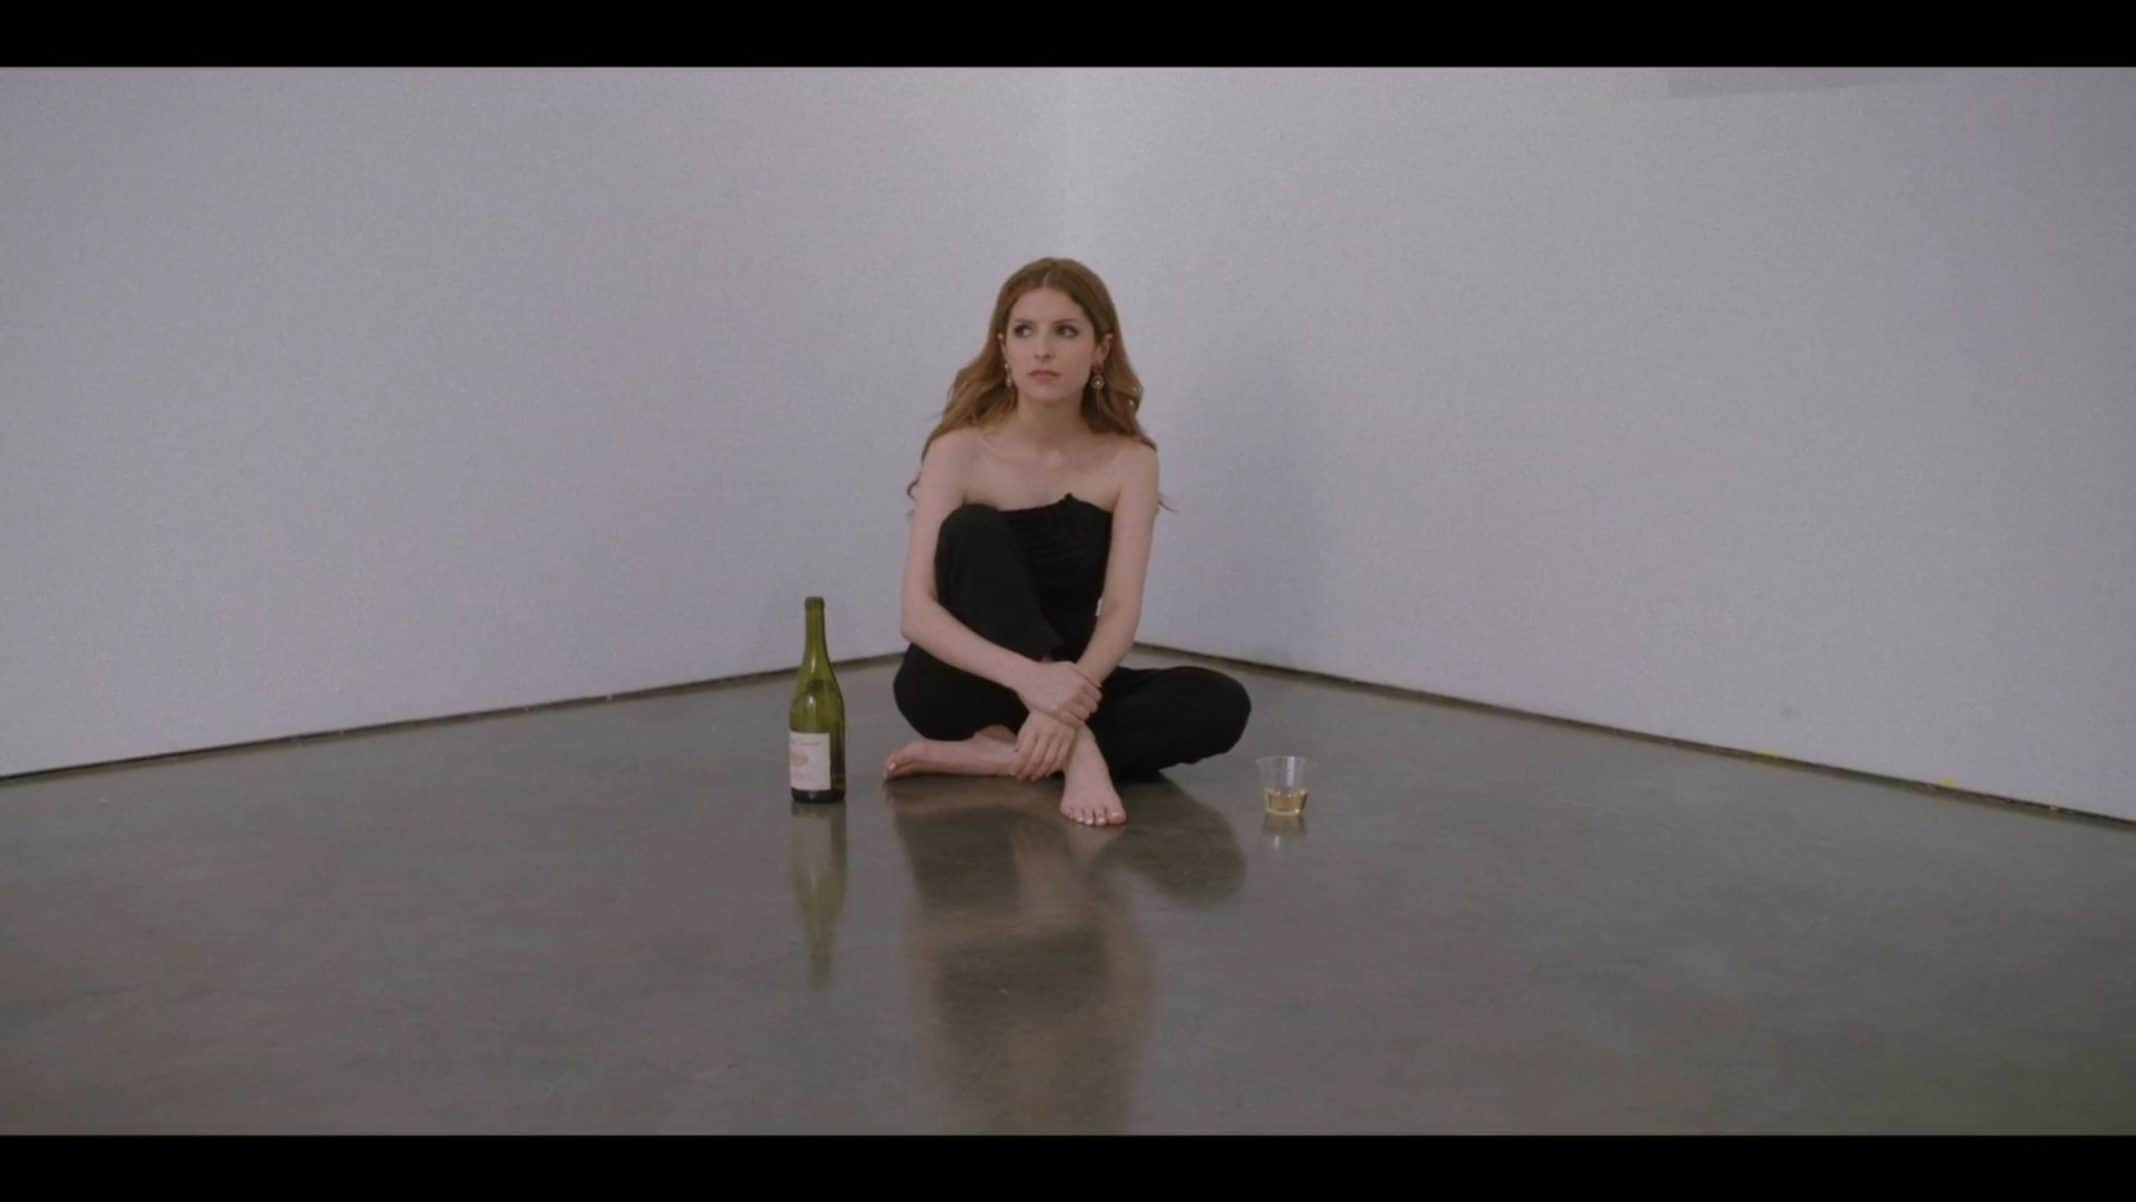 Darby sitting on the floor, barefoot, after a successful art showing.